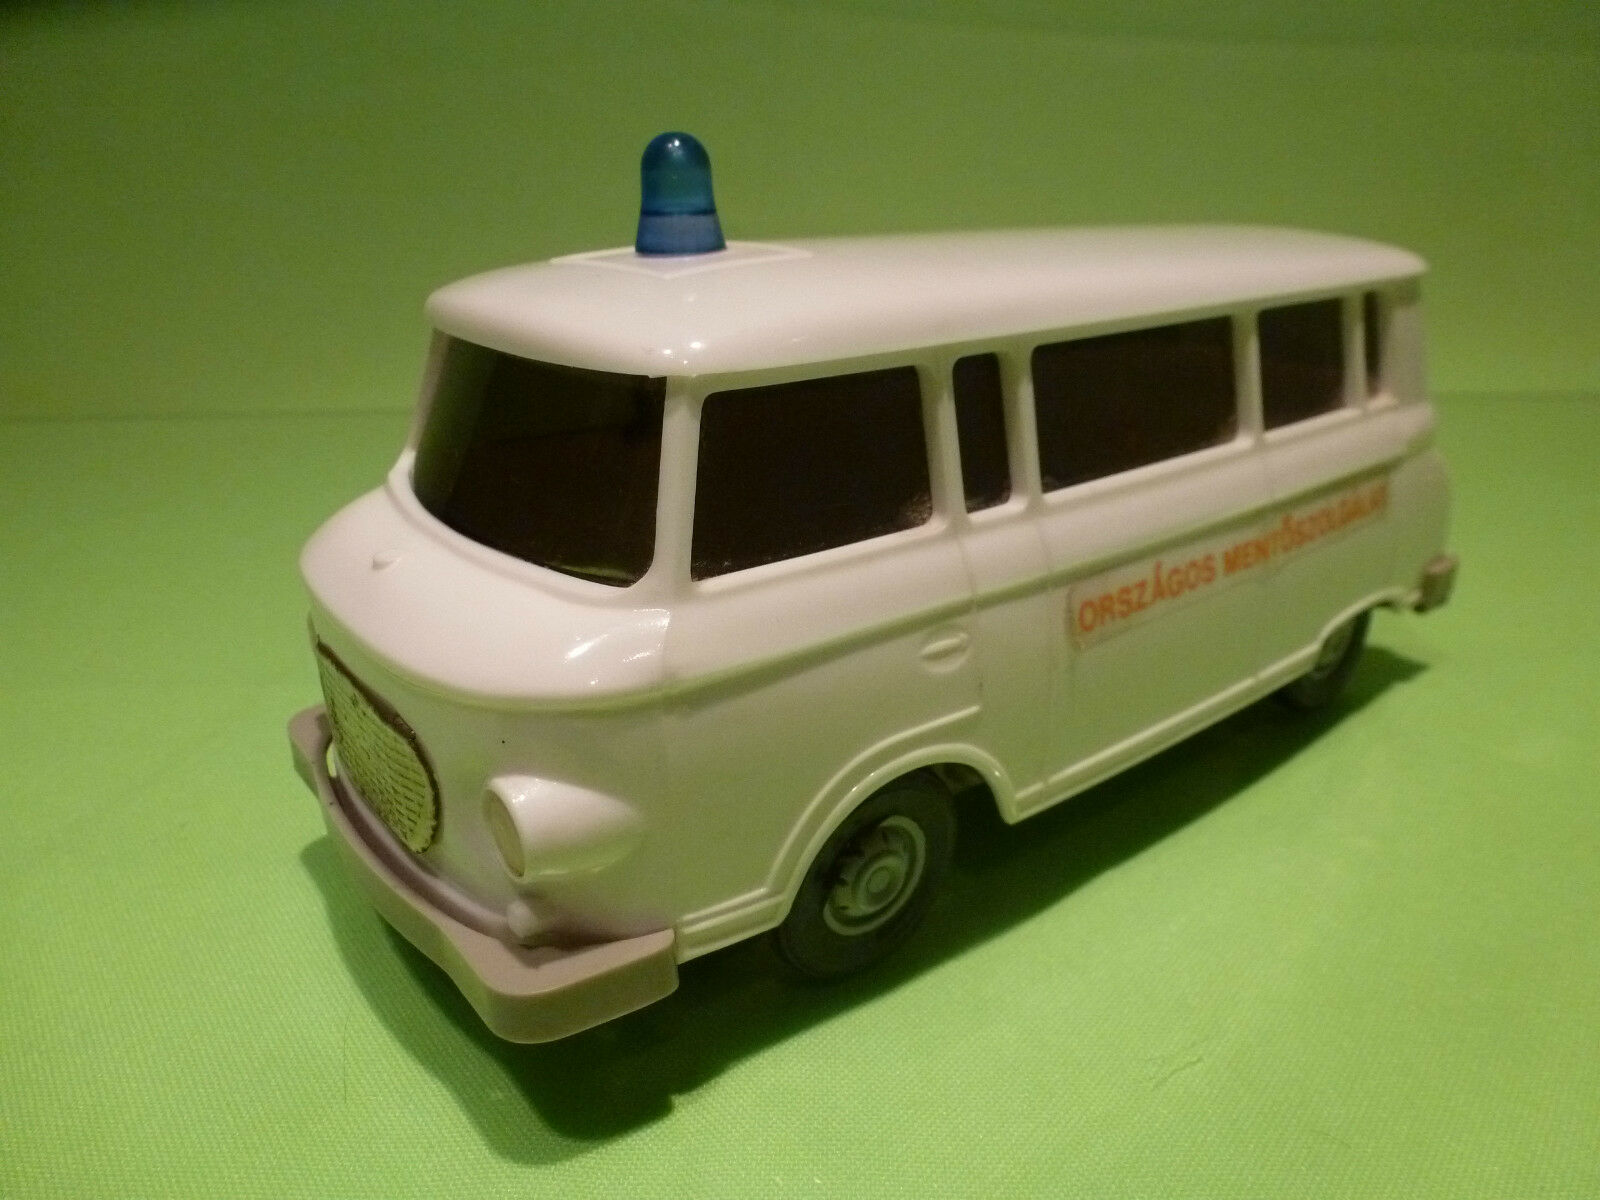 ANKER BARKAS B1000 B1000 B1000 - AMBULANCE ORSZAGOS MENTOSZOLGALAT 1 25 - GOOD CONDITION ddb739